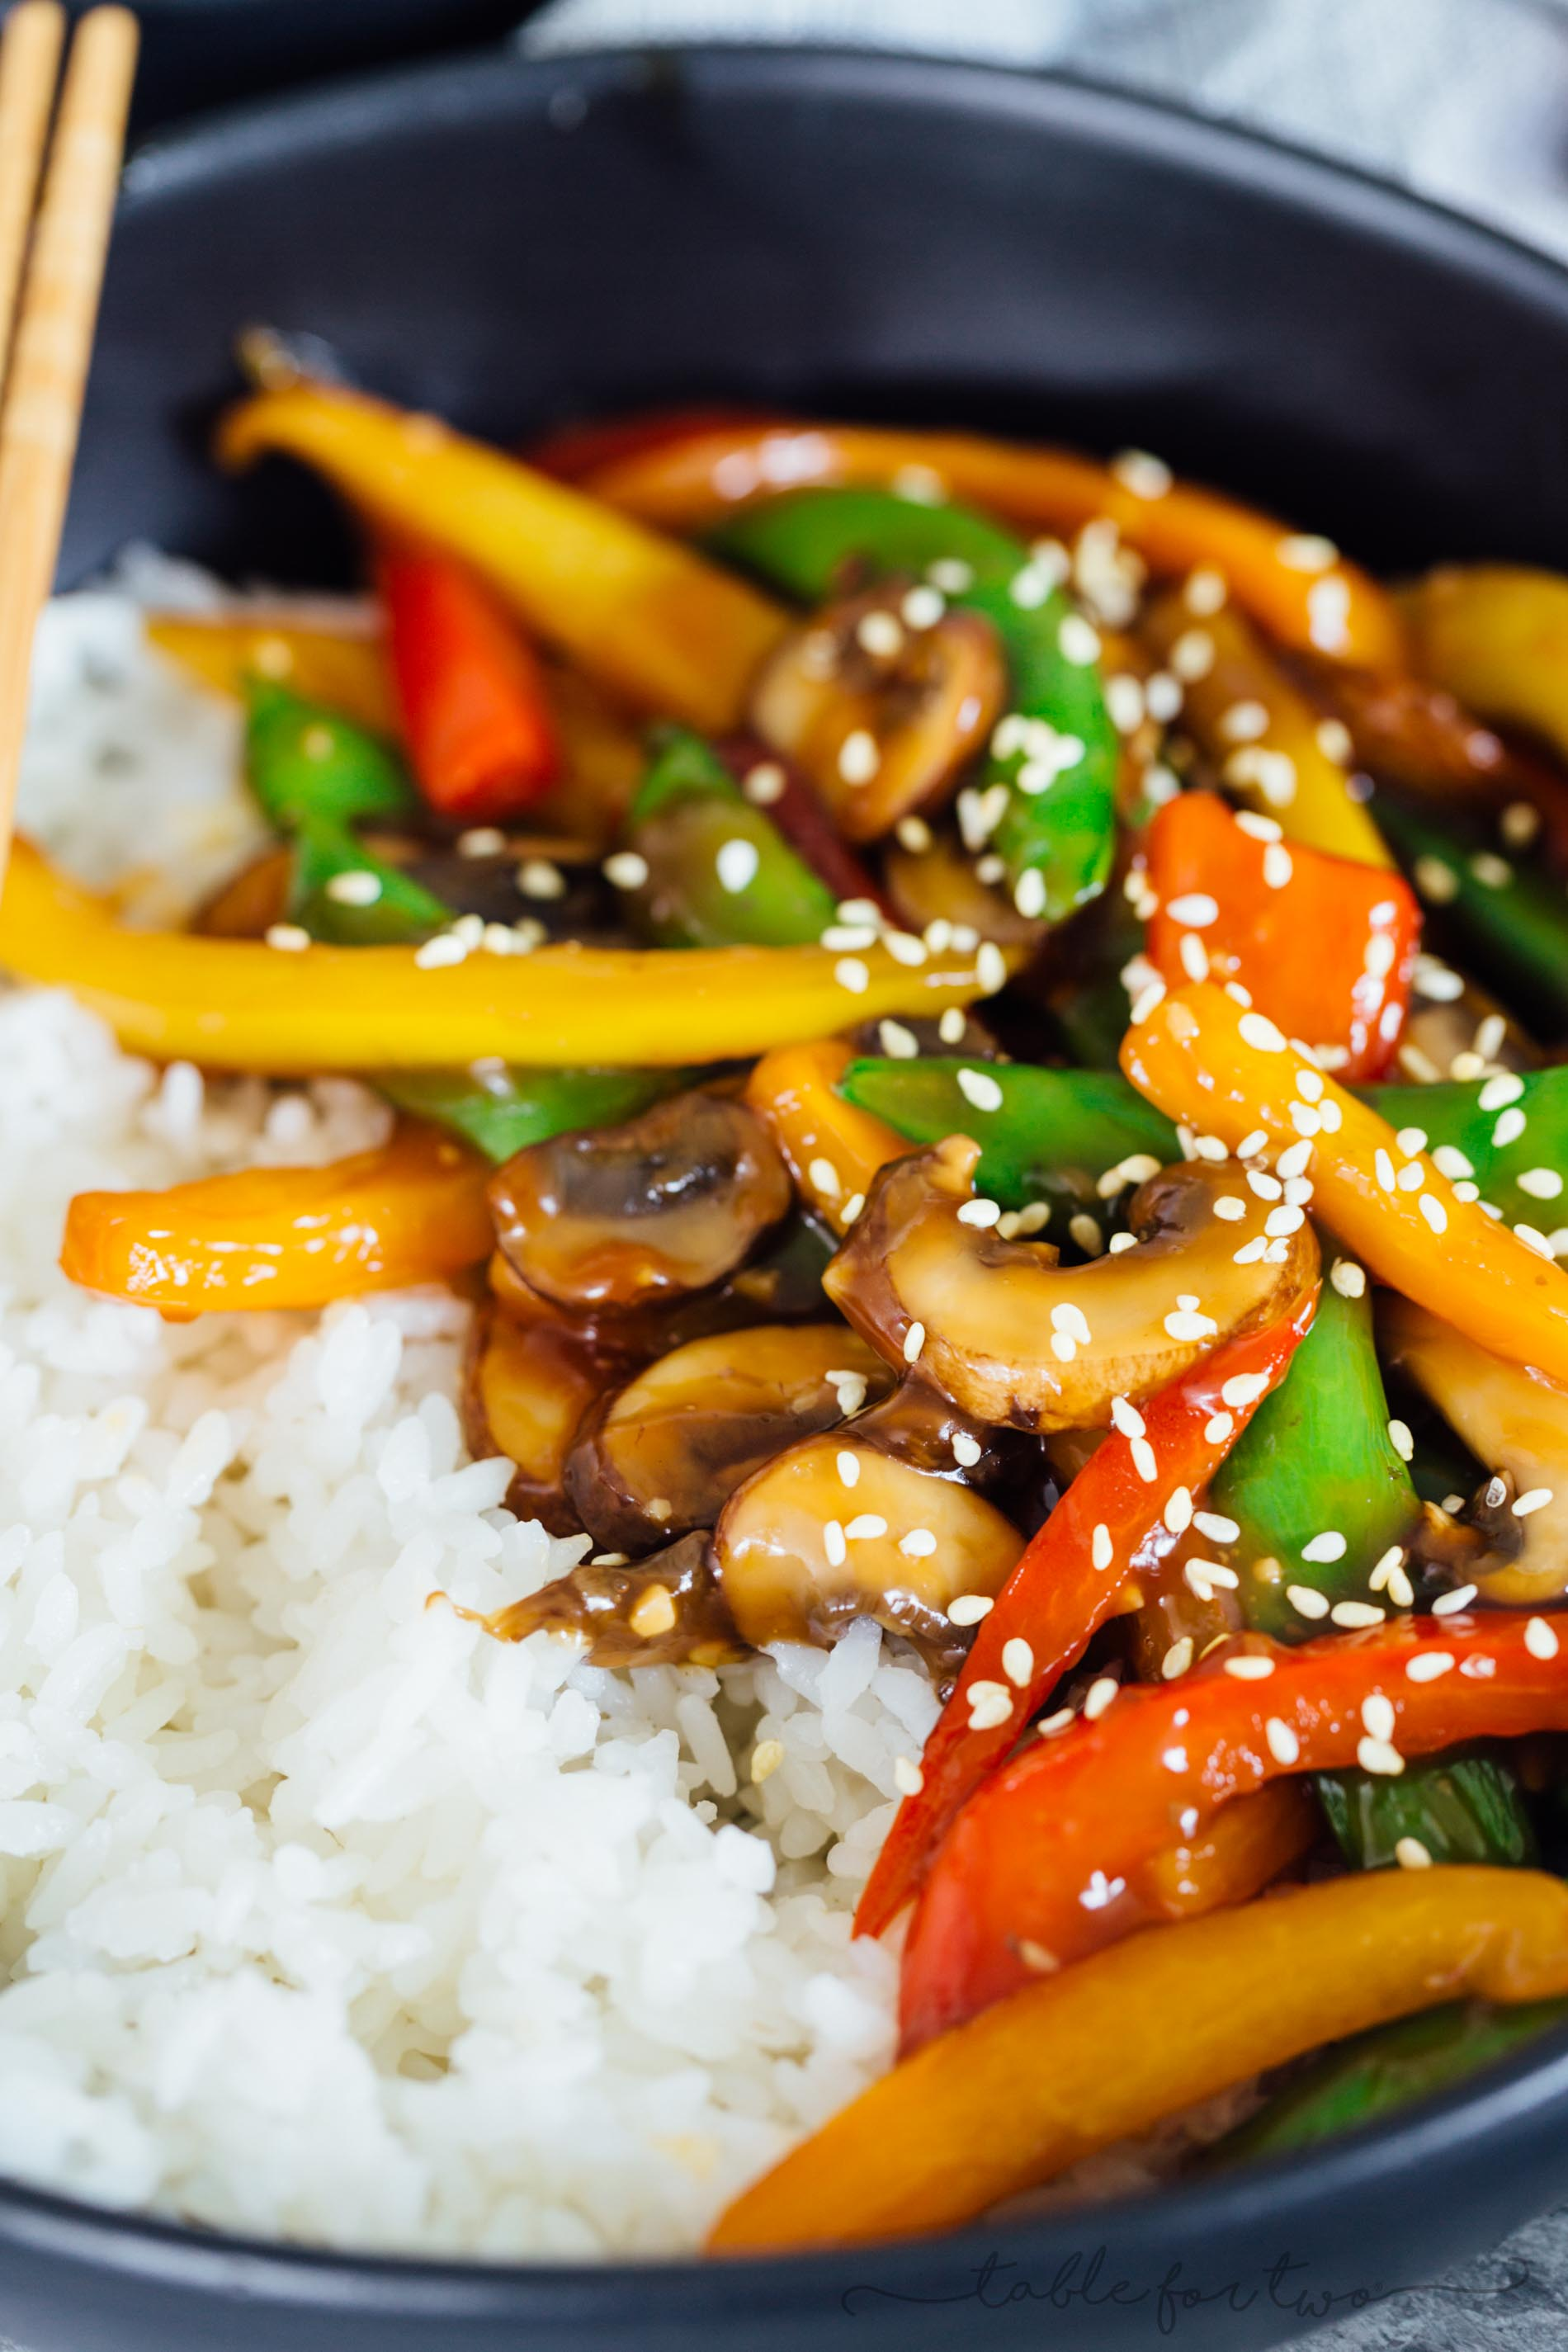 20 minute vegetable stir fry quick vegetable dinner stir fry